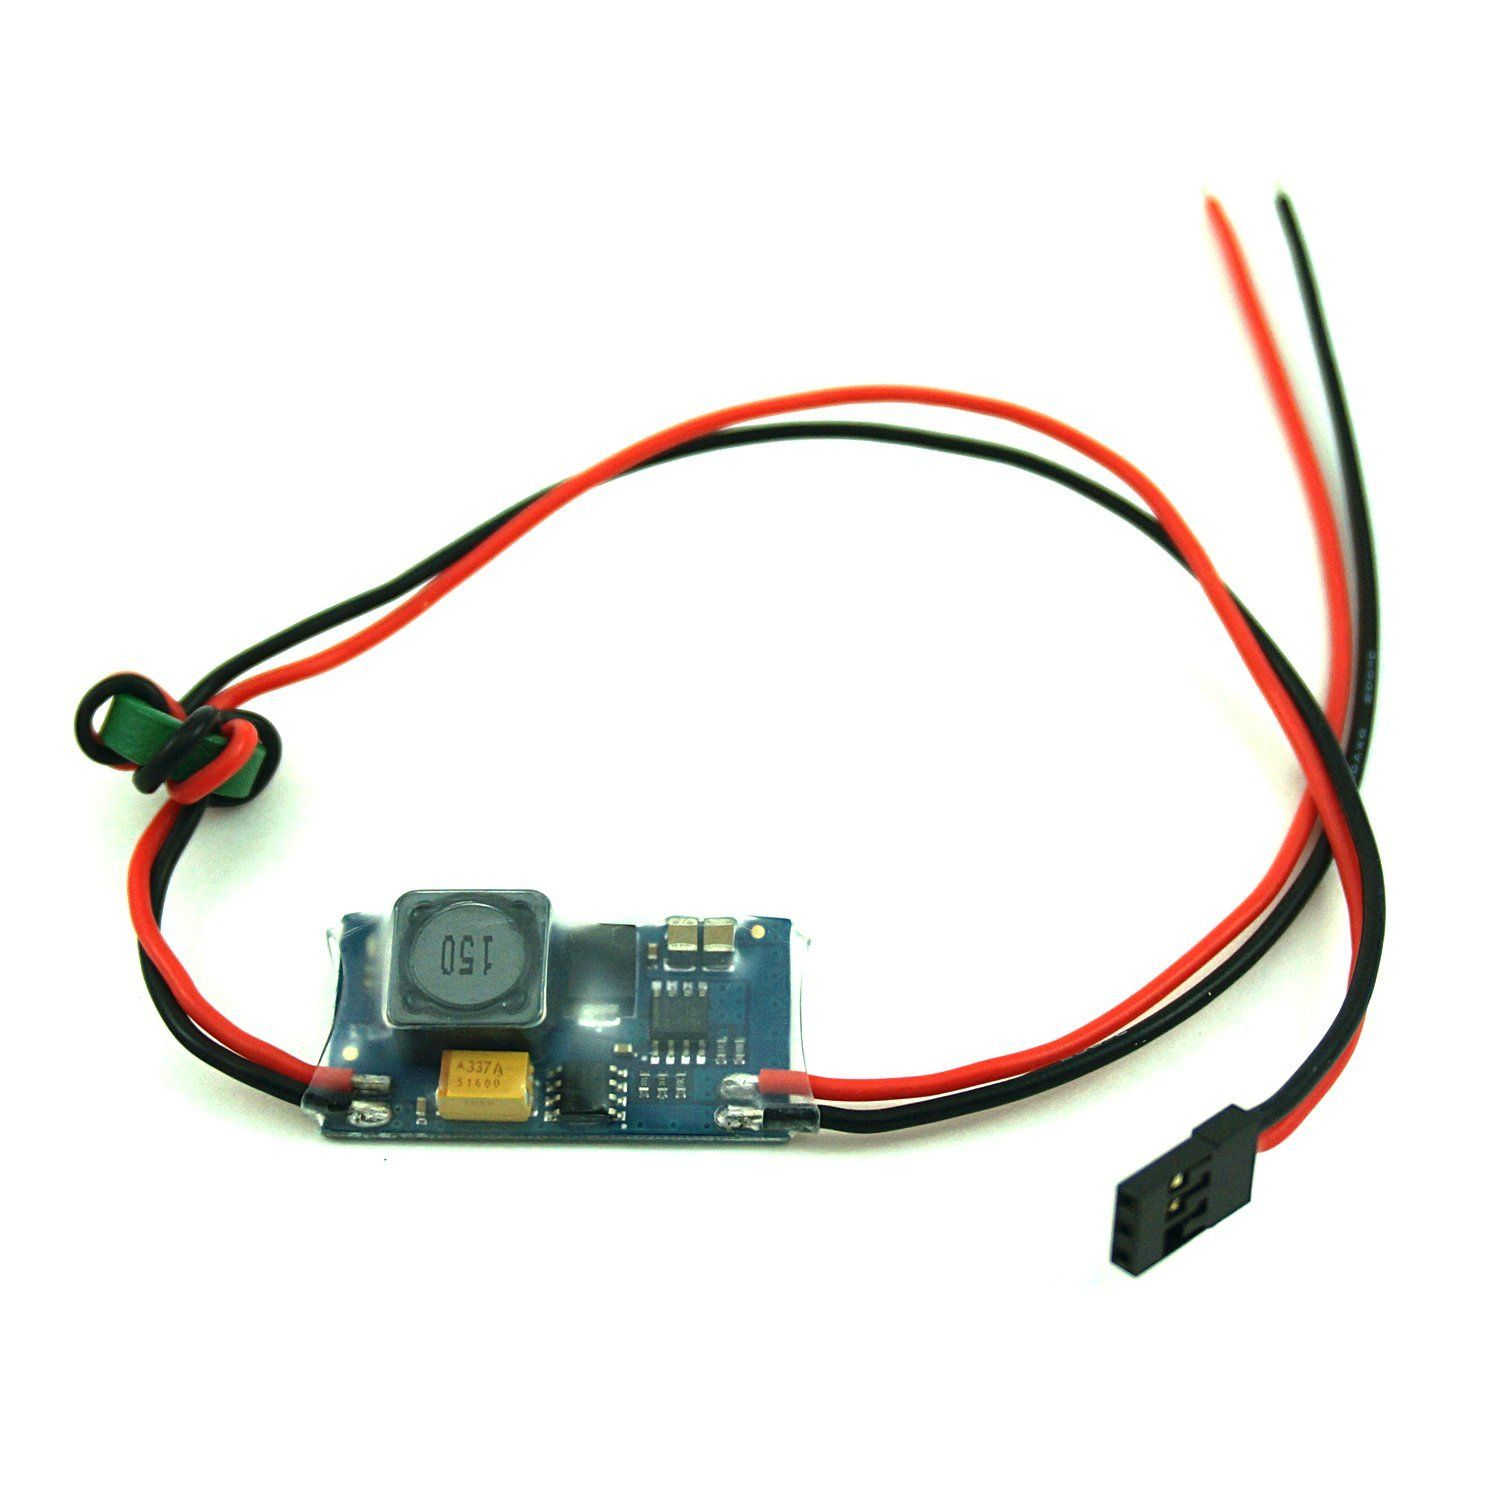 hight resolution of  fpvfocus bec sbec ubec 5v 5a 5 volt 2s 8s lipo switching regulator for fpv equipment and systems